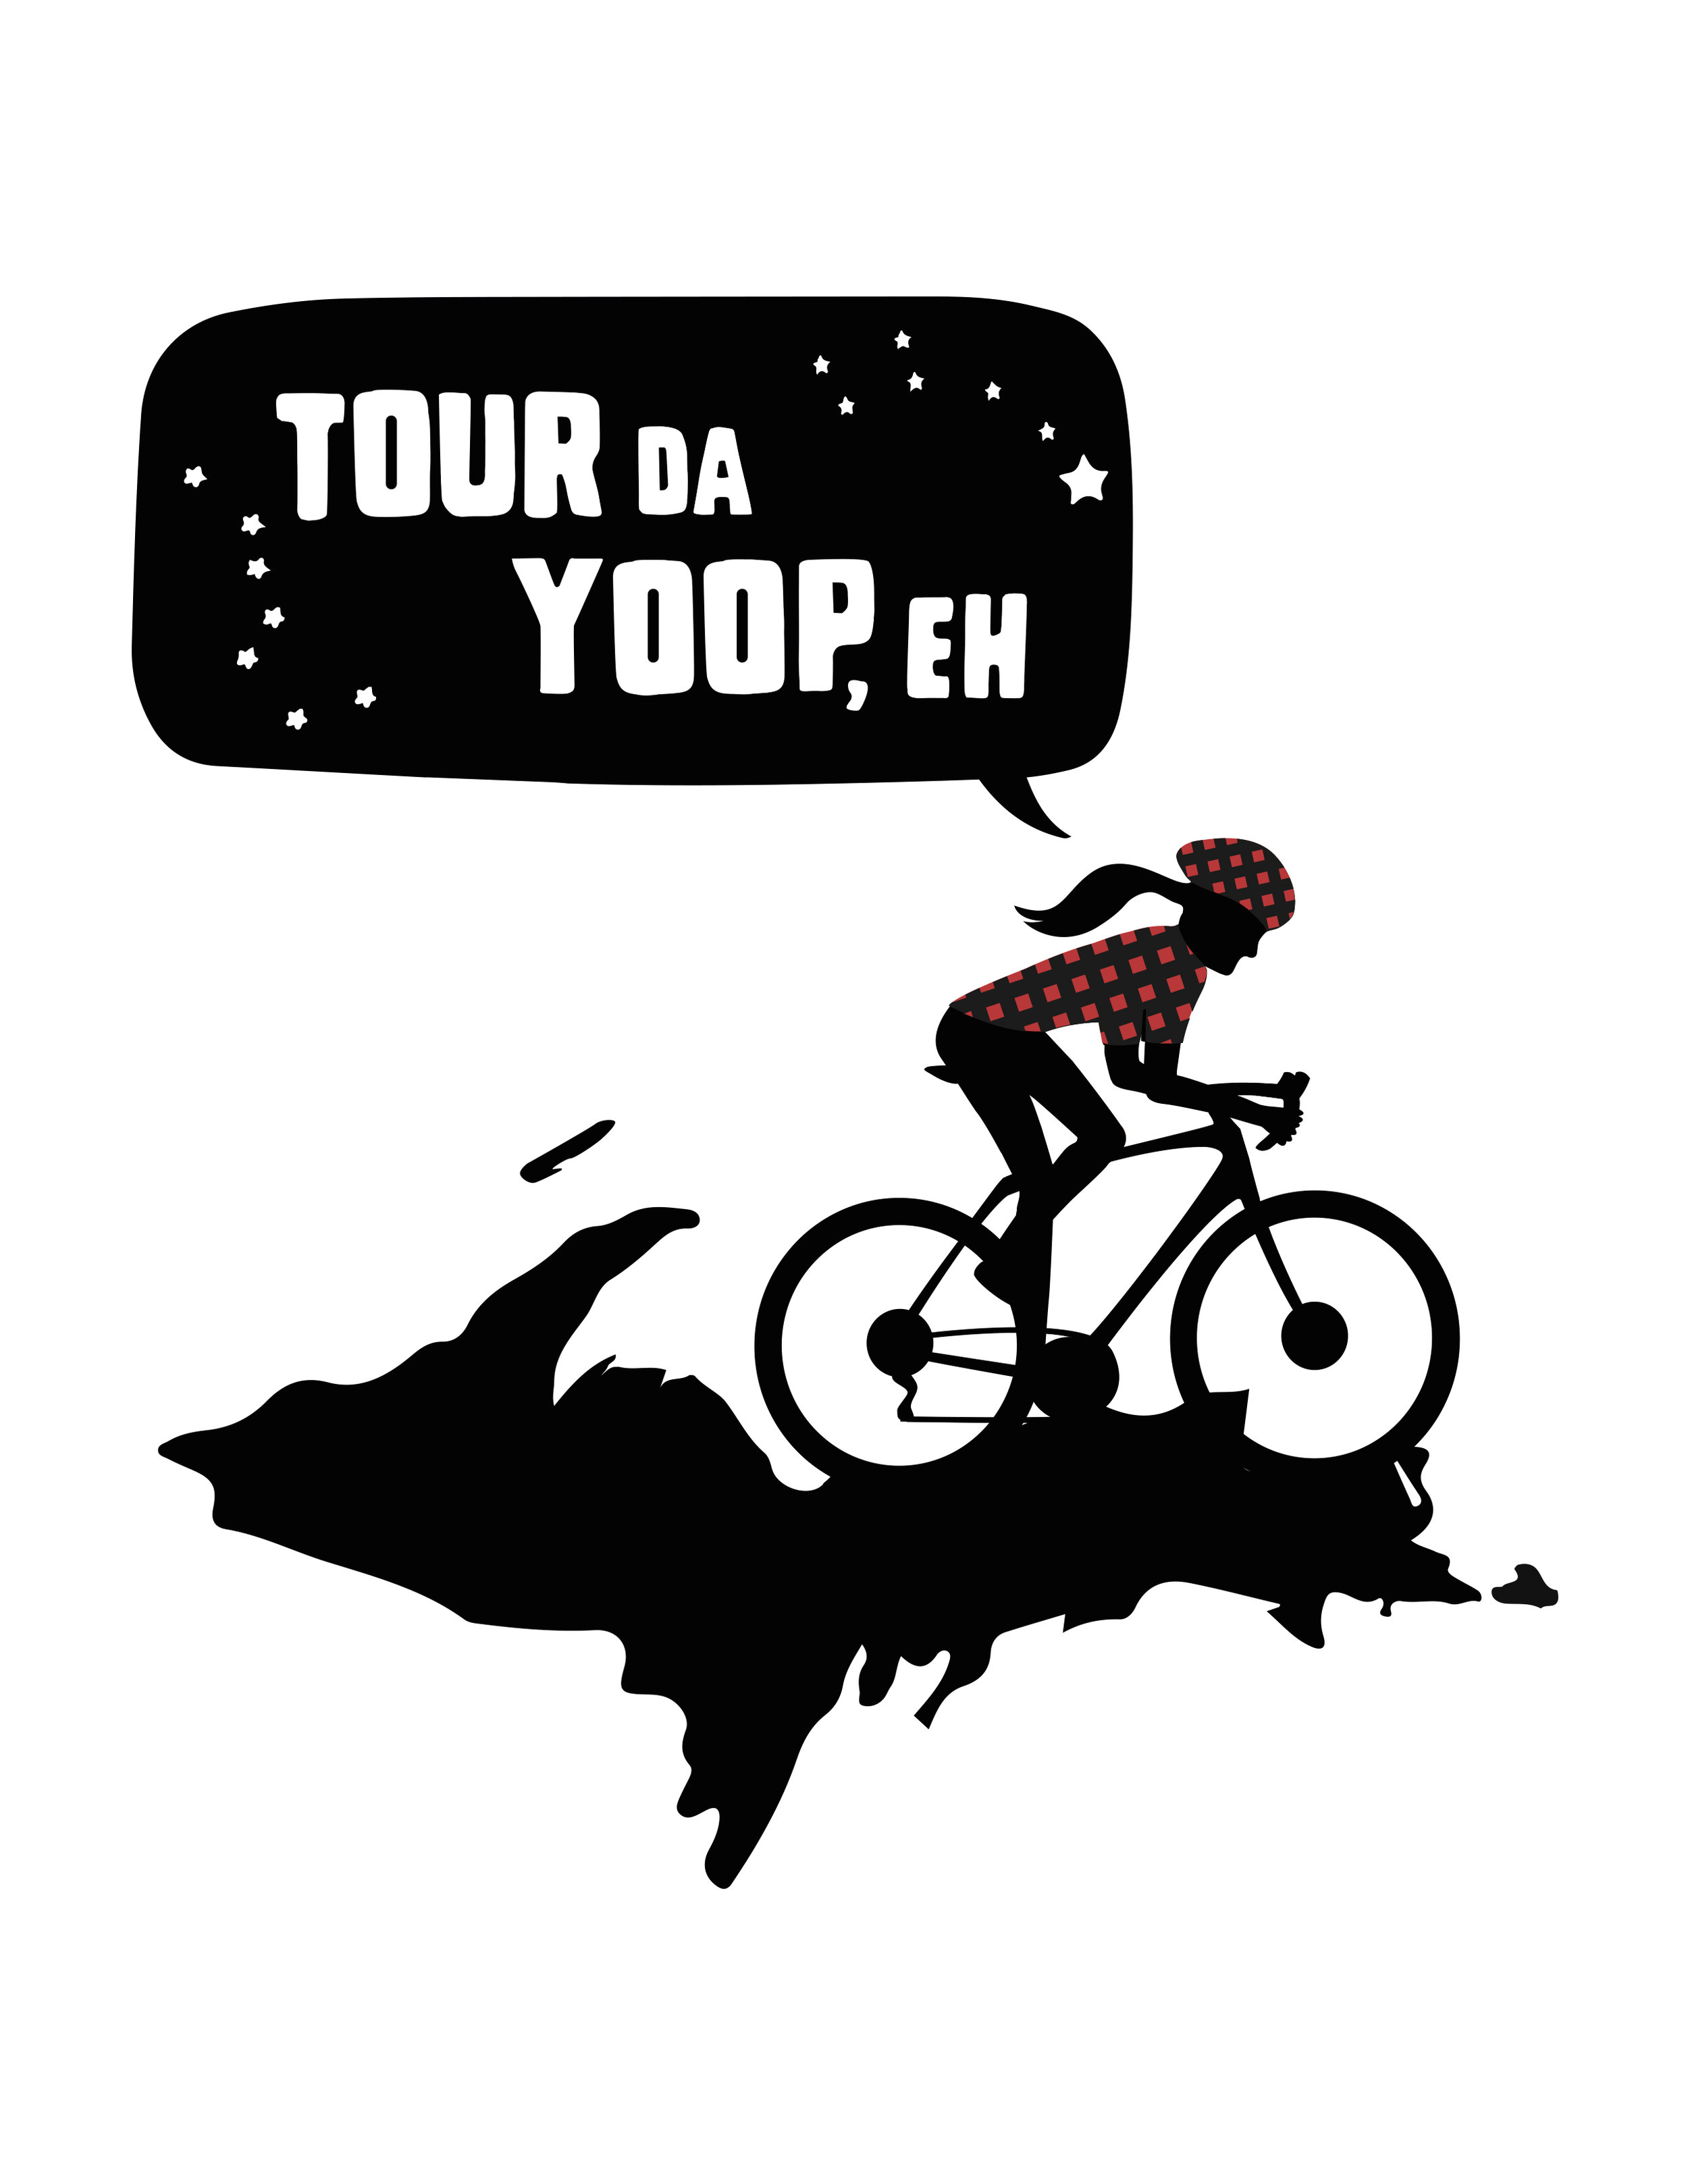 What is Tour Da Yoop, Eh? - - Tour Da Yoop, Eh - Entire 1,200 mile perimeter bucket list ride1) A 10 day race. Daily and overall winners2) Race/Ride 1 day or as many of the 10 as you'd like3) Visit the UP anytime of the year and choose from any of the thousands of miles of glorious routes and have a blast!Translation - Come Ride Around the UP With Me, OK?